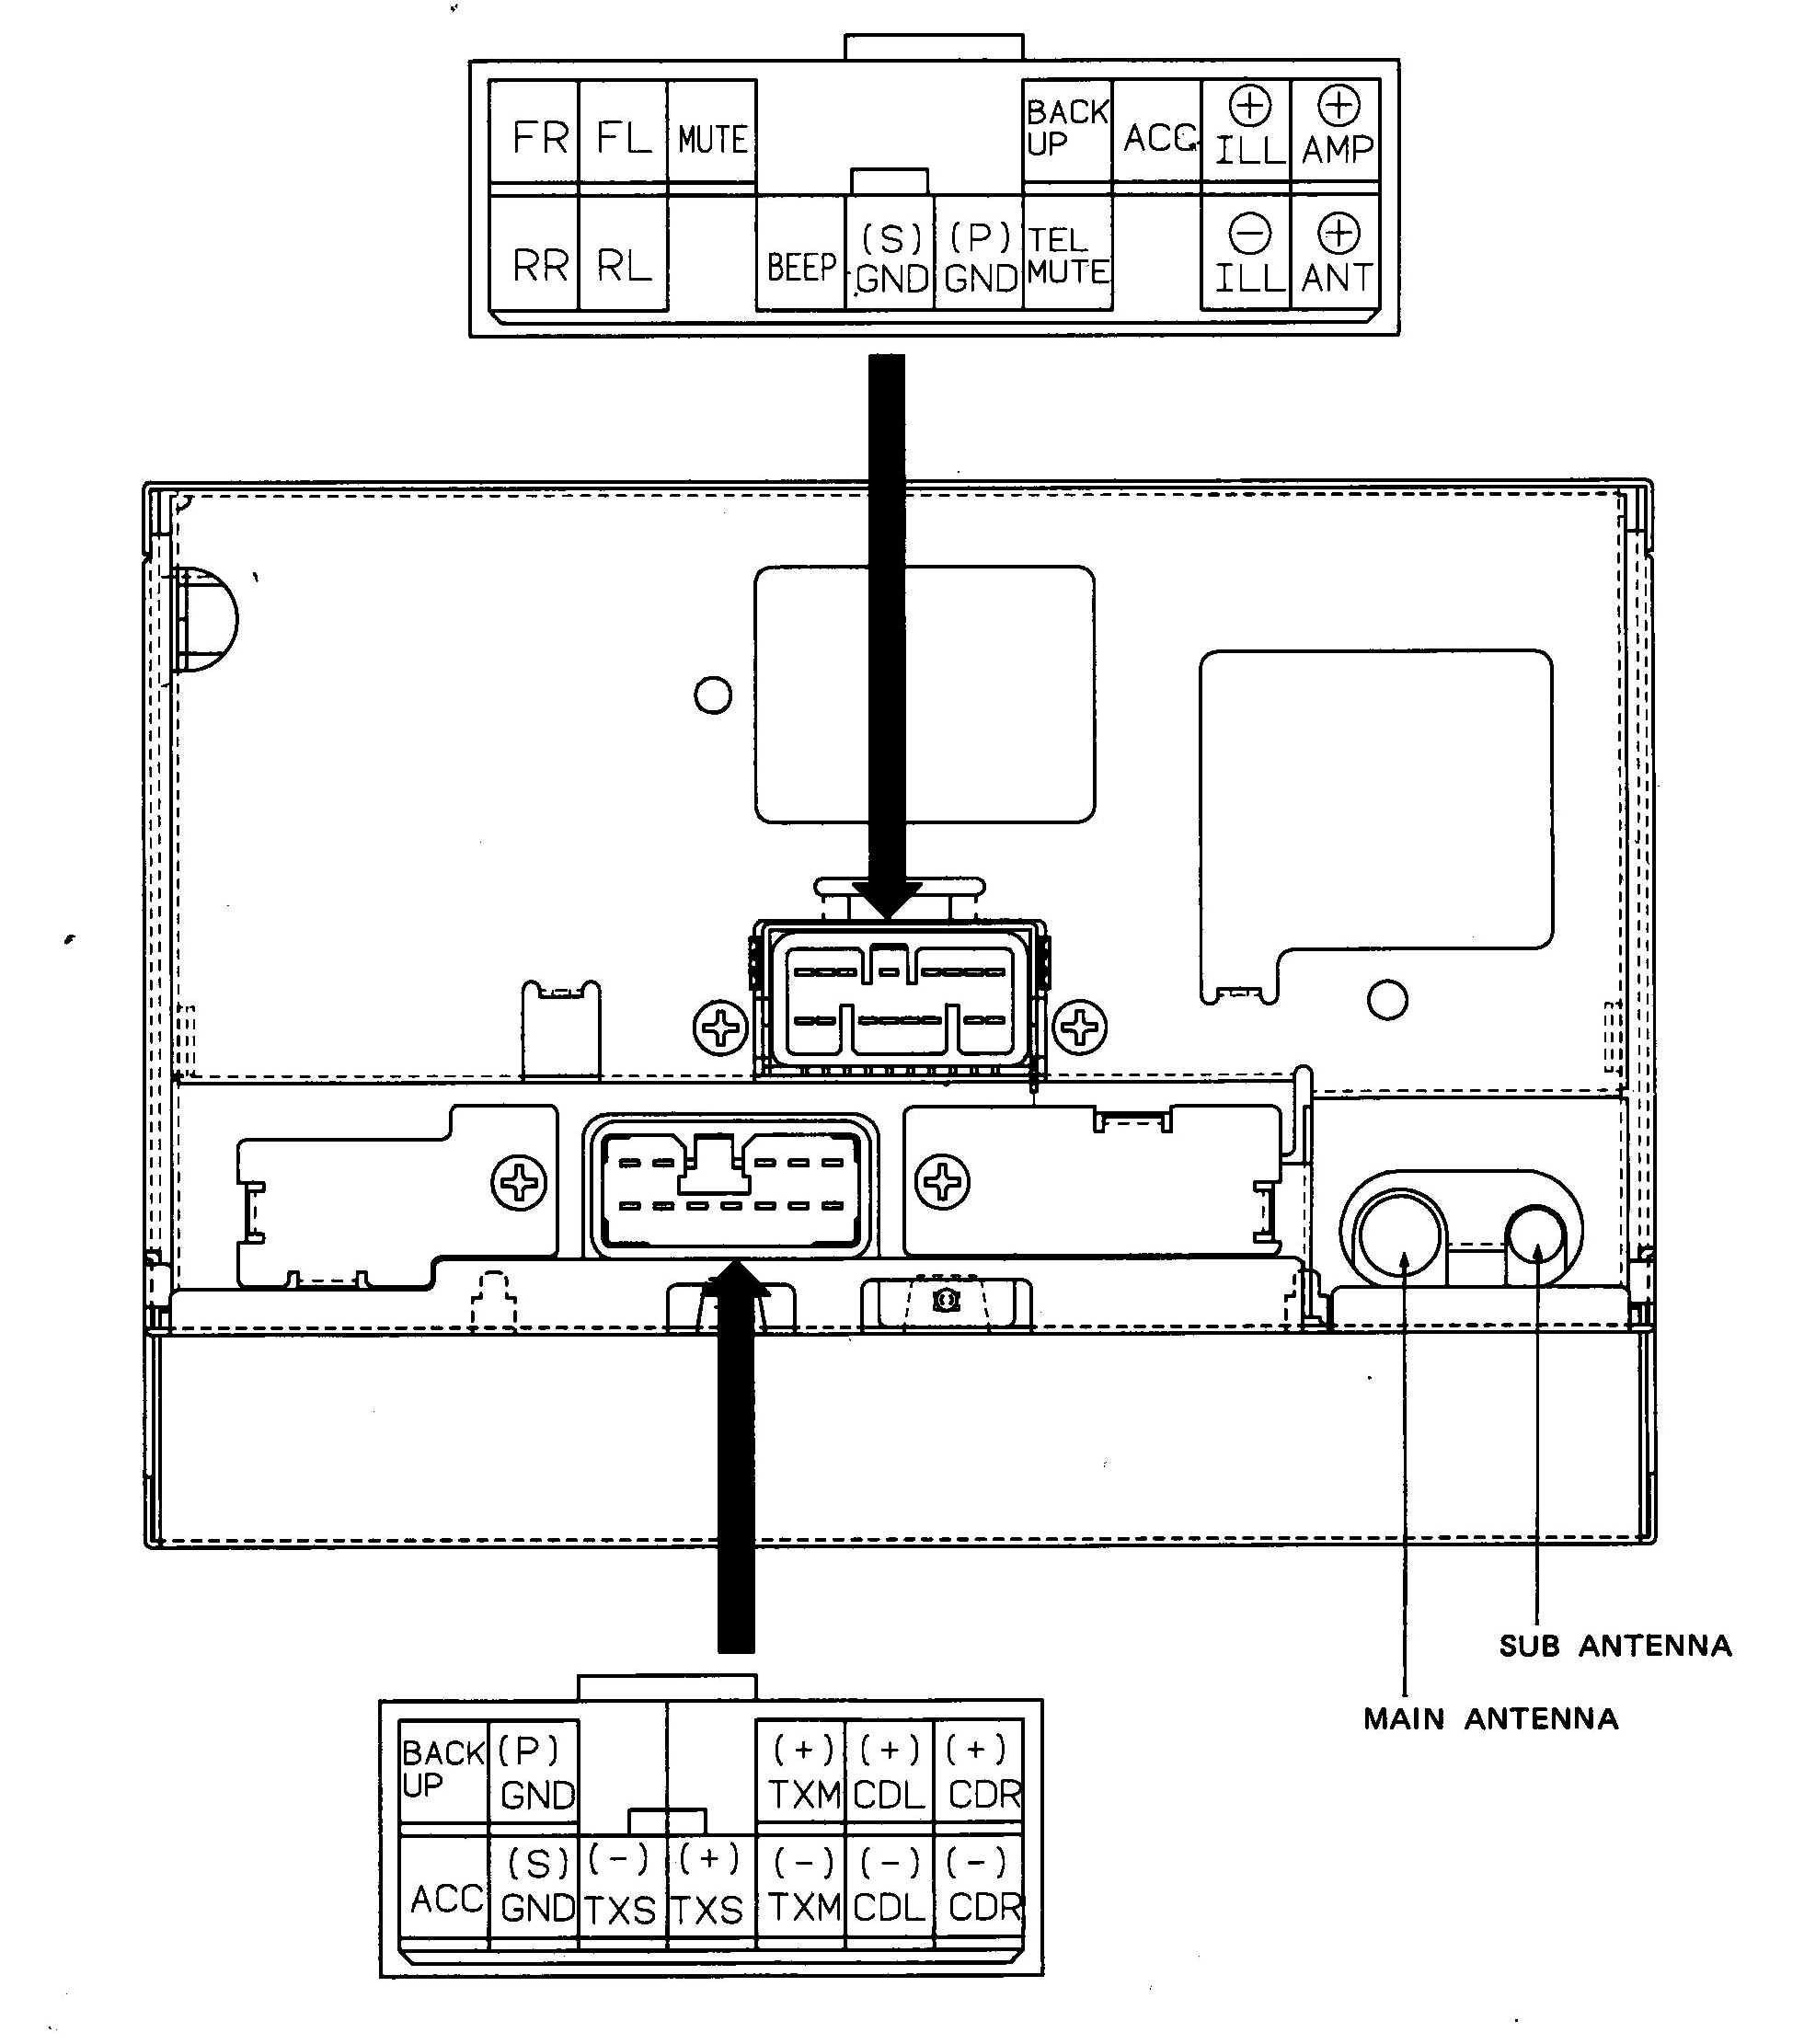 lexus car stereo wiring diagram wiring diagrams best car audio wire diagram codes lexus factory car stereo repair boat stereo wiring lexus car stereo wiring diagram